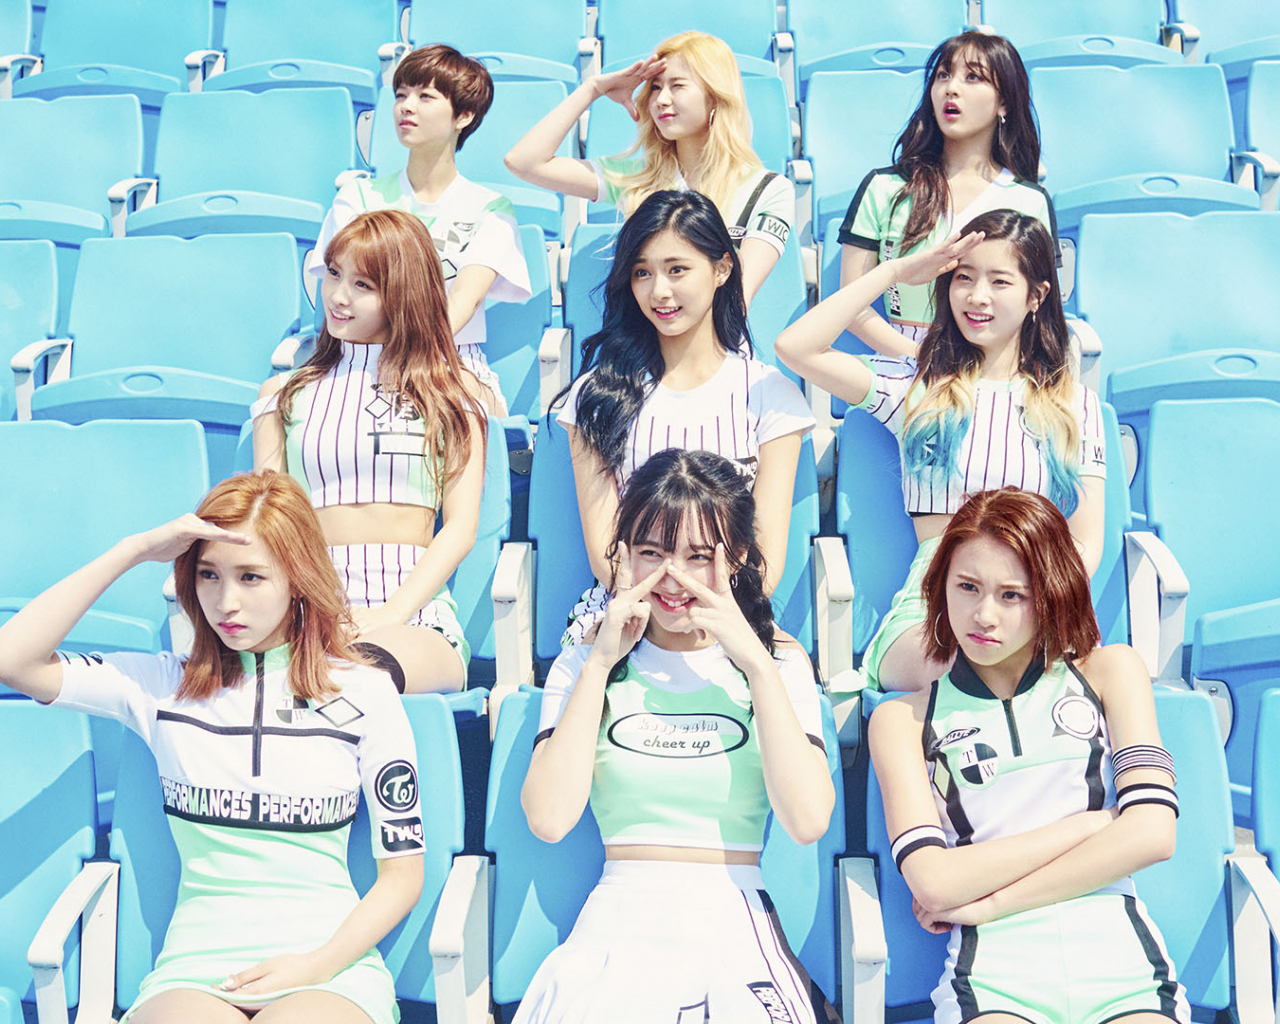 Free Download Cute Ladies Of Twice Hd Wallpaper Background Image 1920x1080 1920x1080 For Your Desktop Mobile Tablet Explore 24 Twice Wallpapers Twice Wallpapers Twice Bdz Wallpapers Twice Fancy Wallpapers